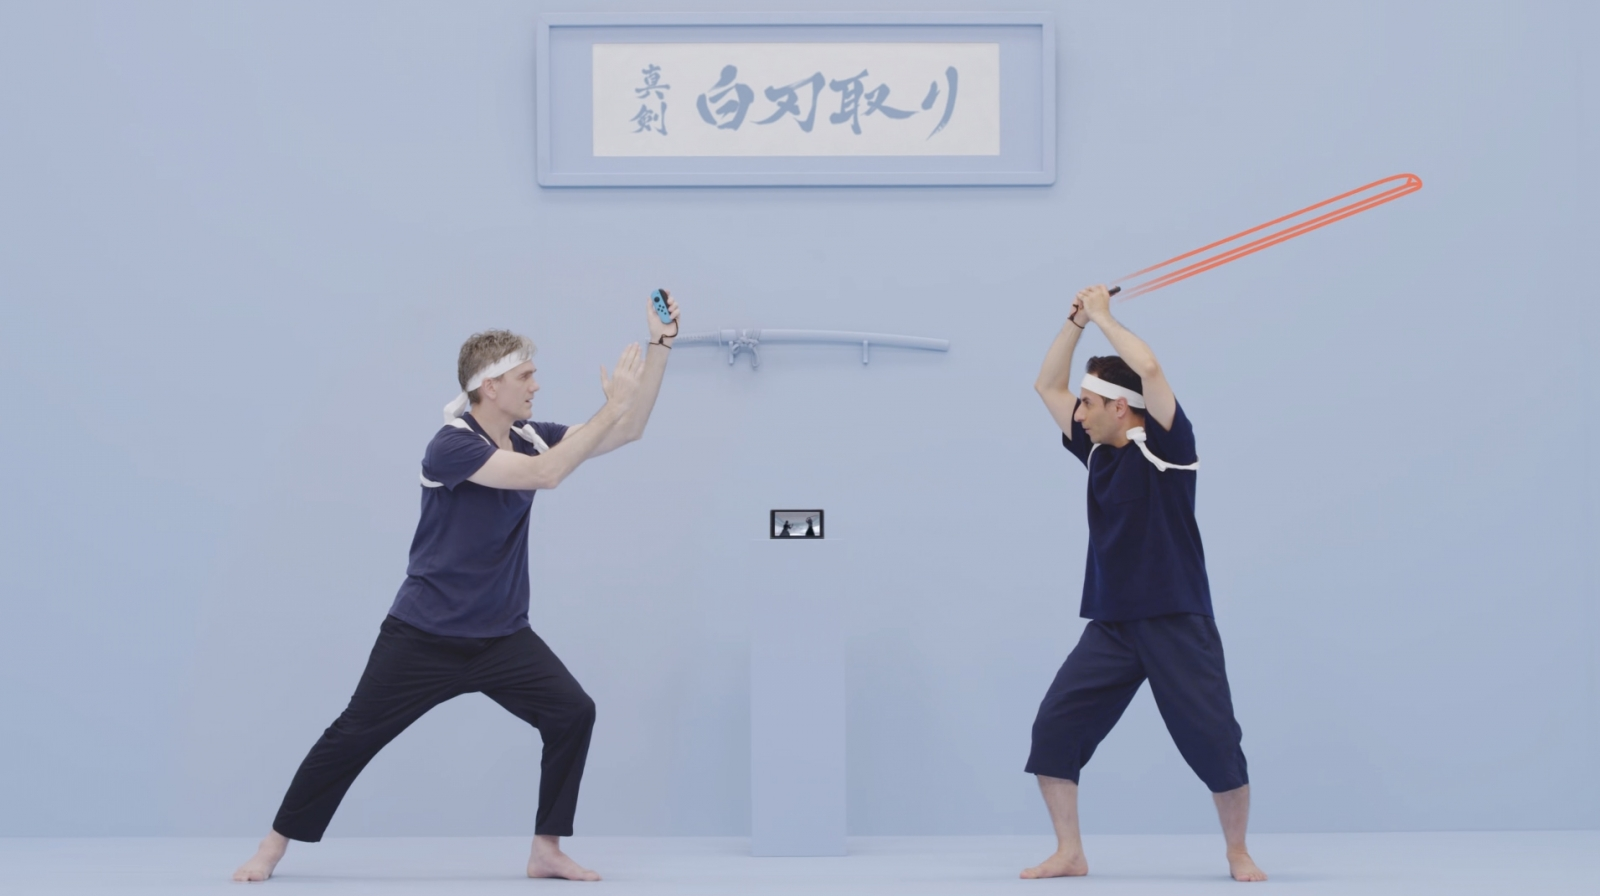 Switch 1-2 samurai sword game